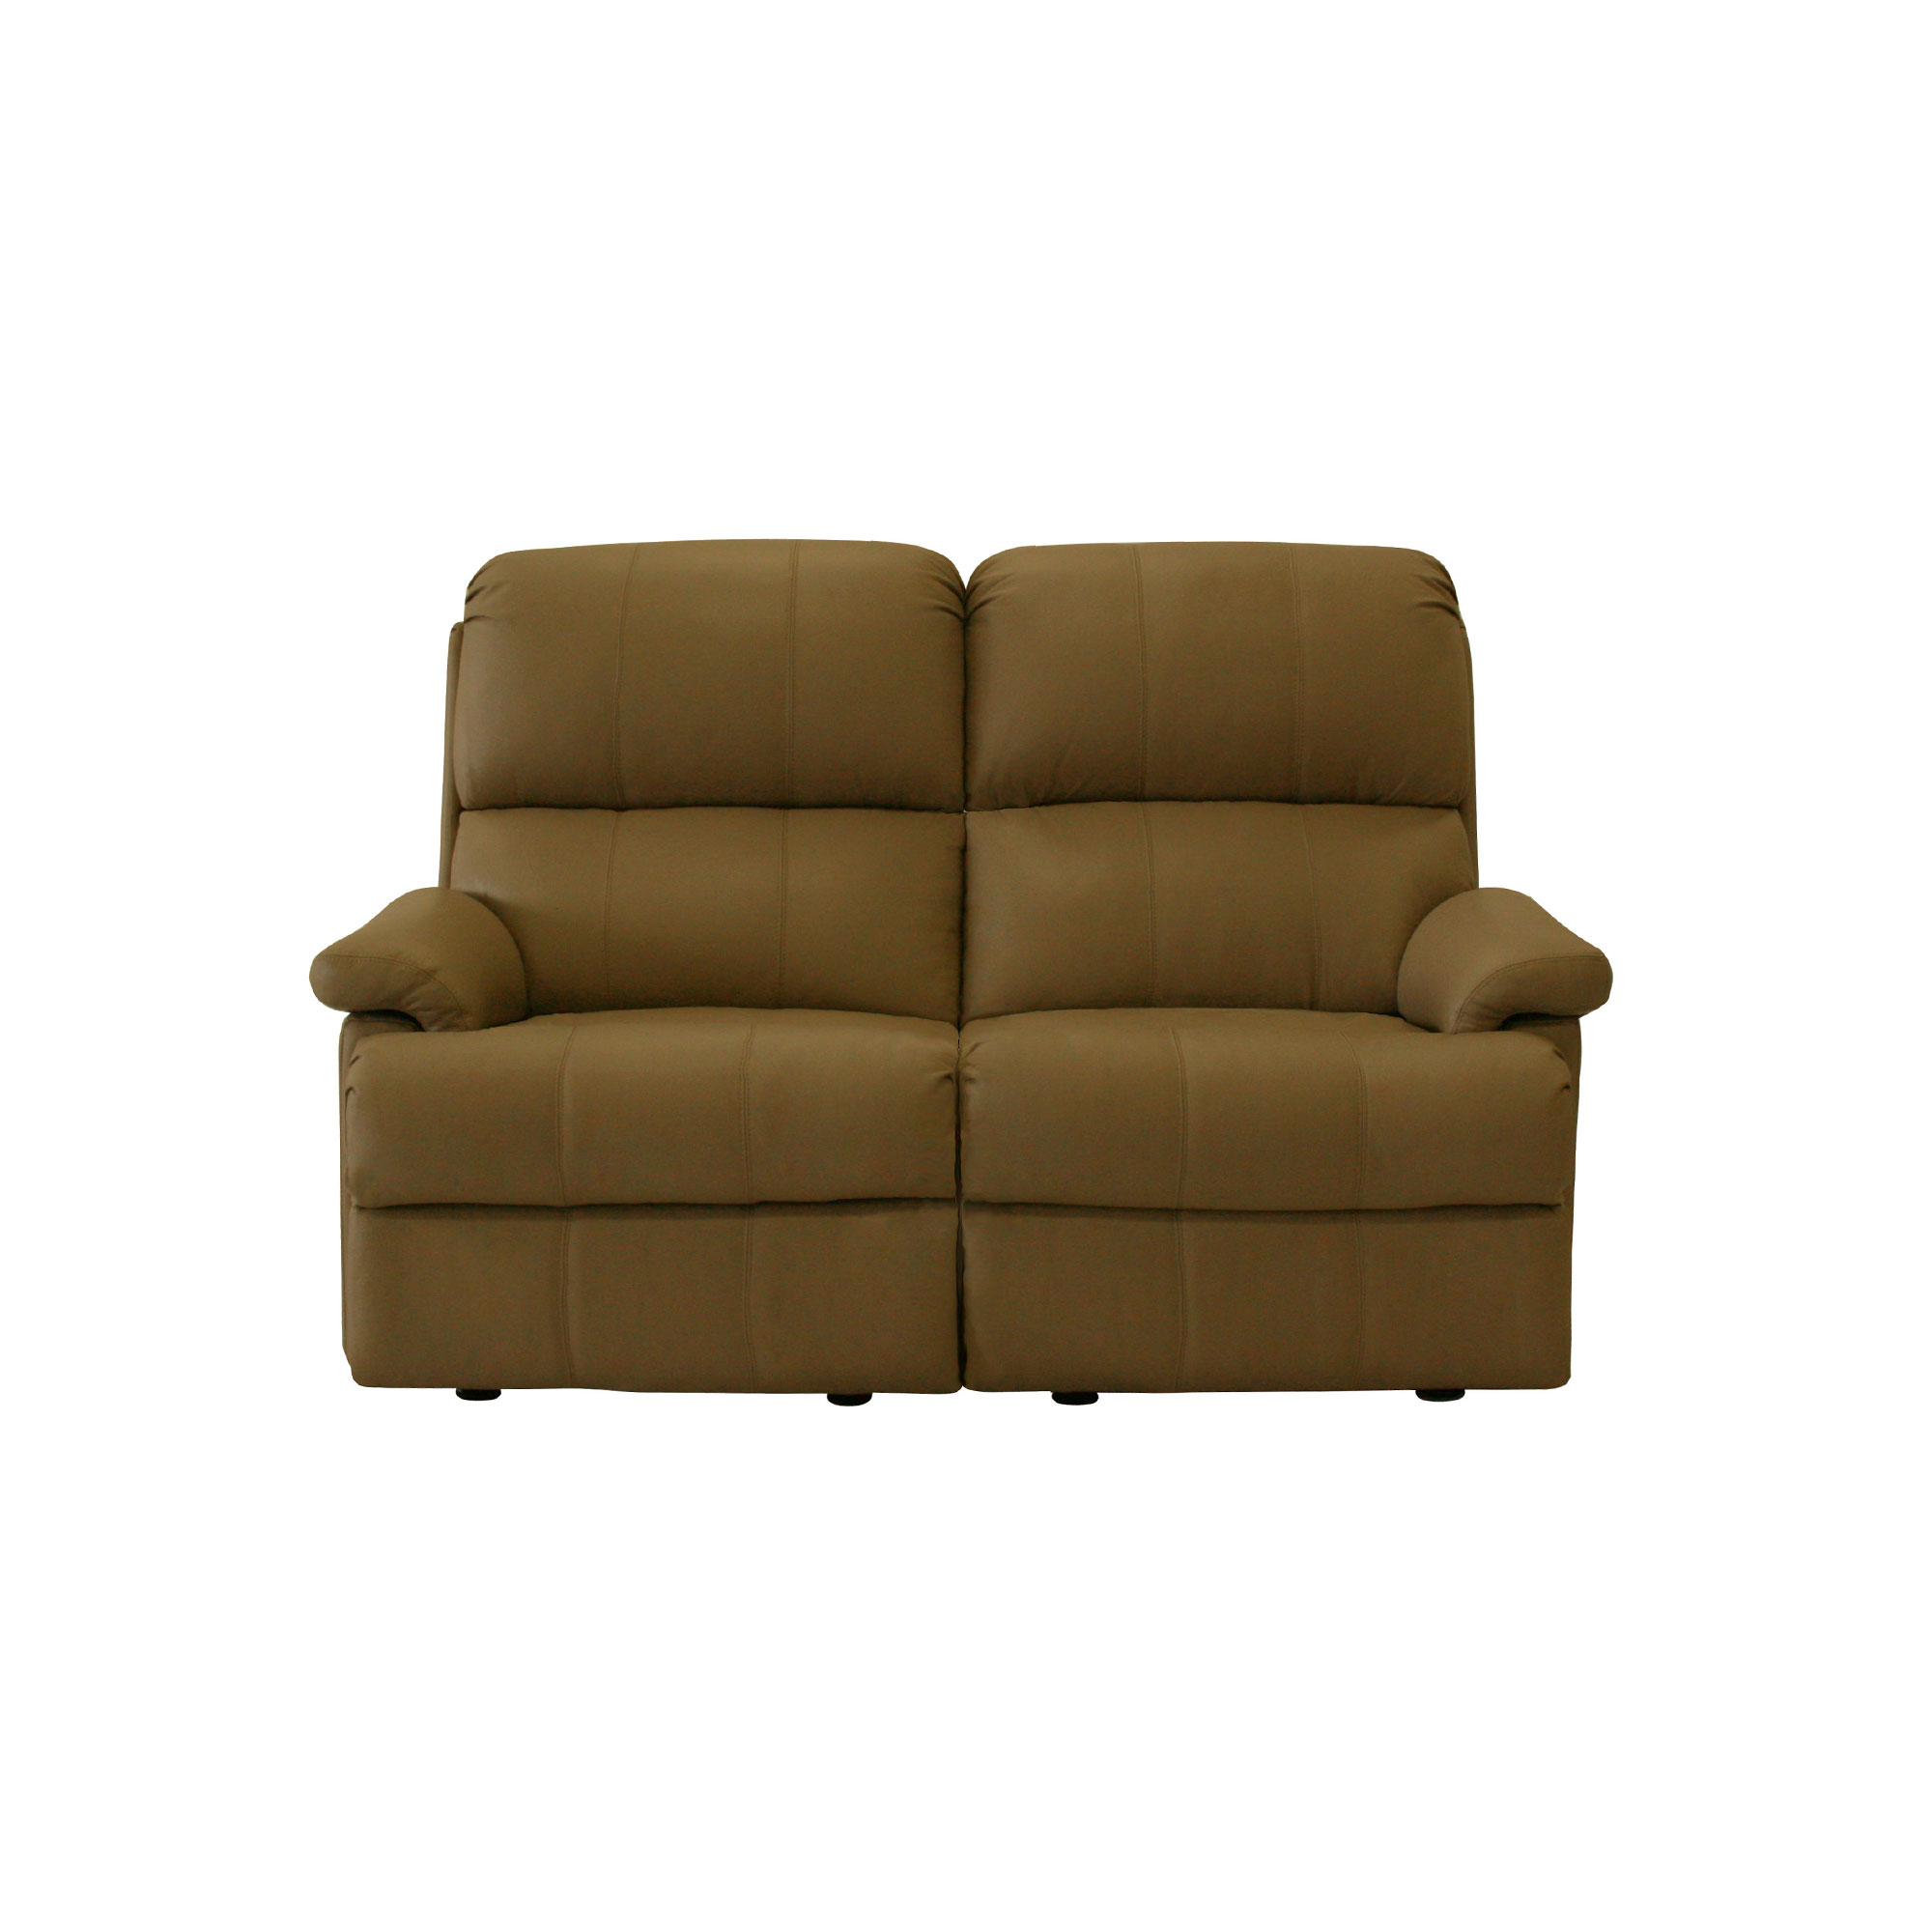 Moran recliners moran pilot recliner kaleidscope for Cloud 9 furniture australia